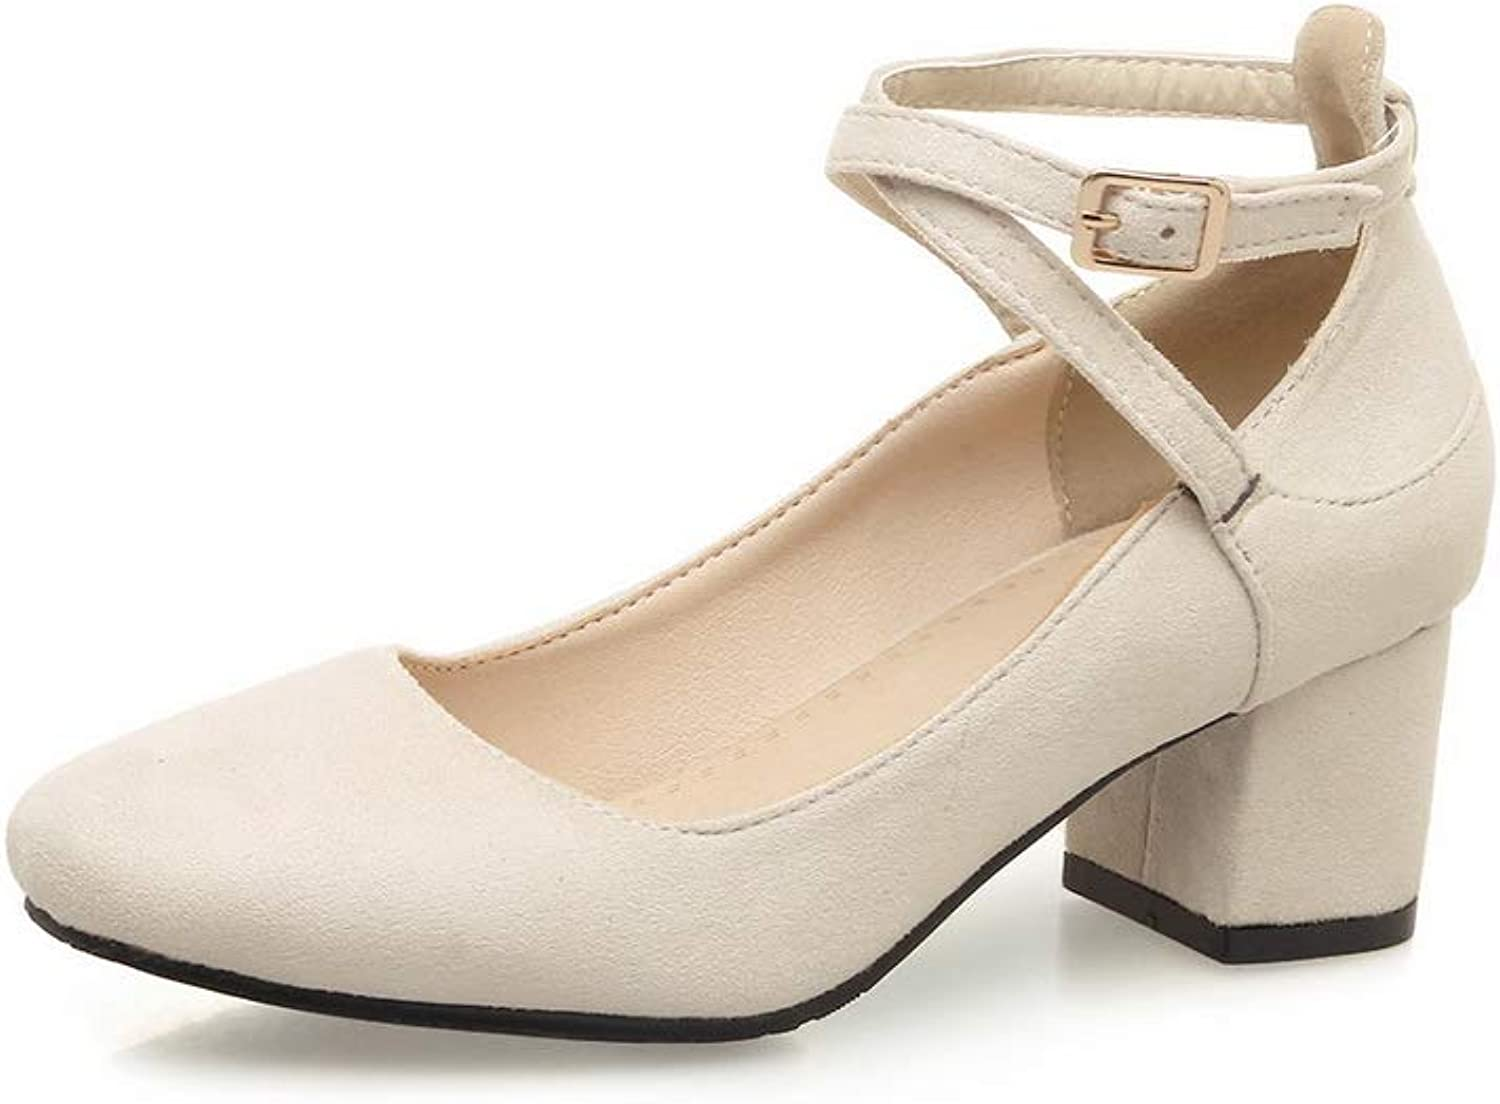 AN Womens Dress Solid Structured Urethane Pumps shoes DGU00518